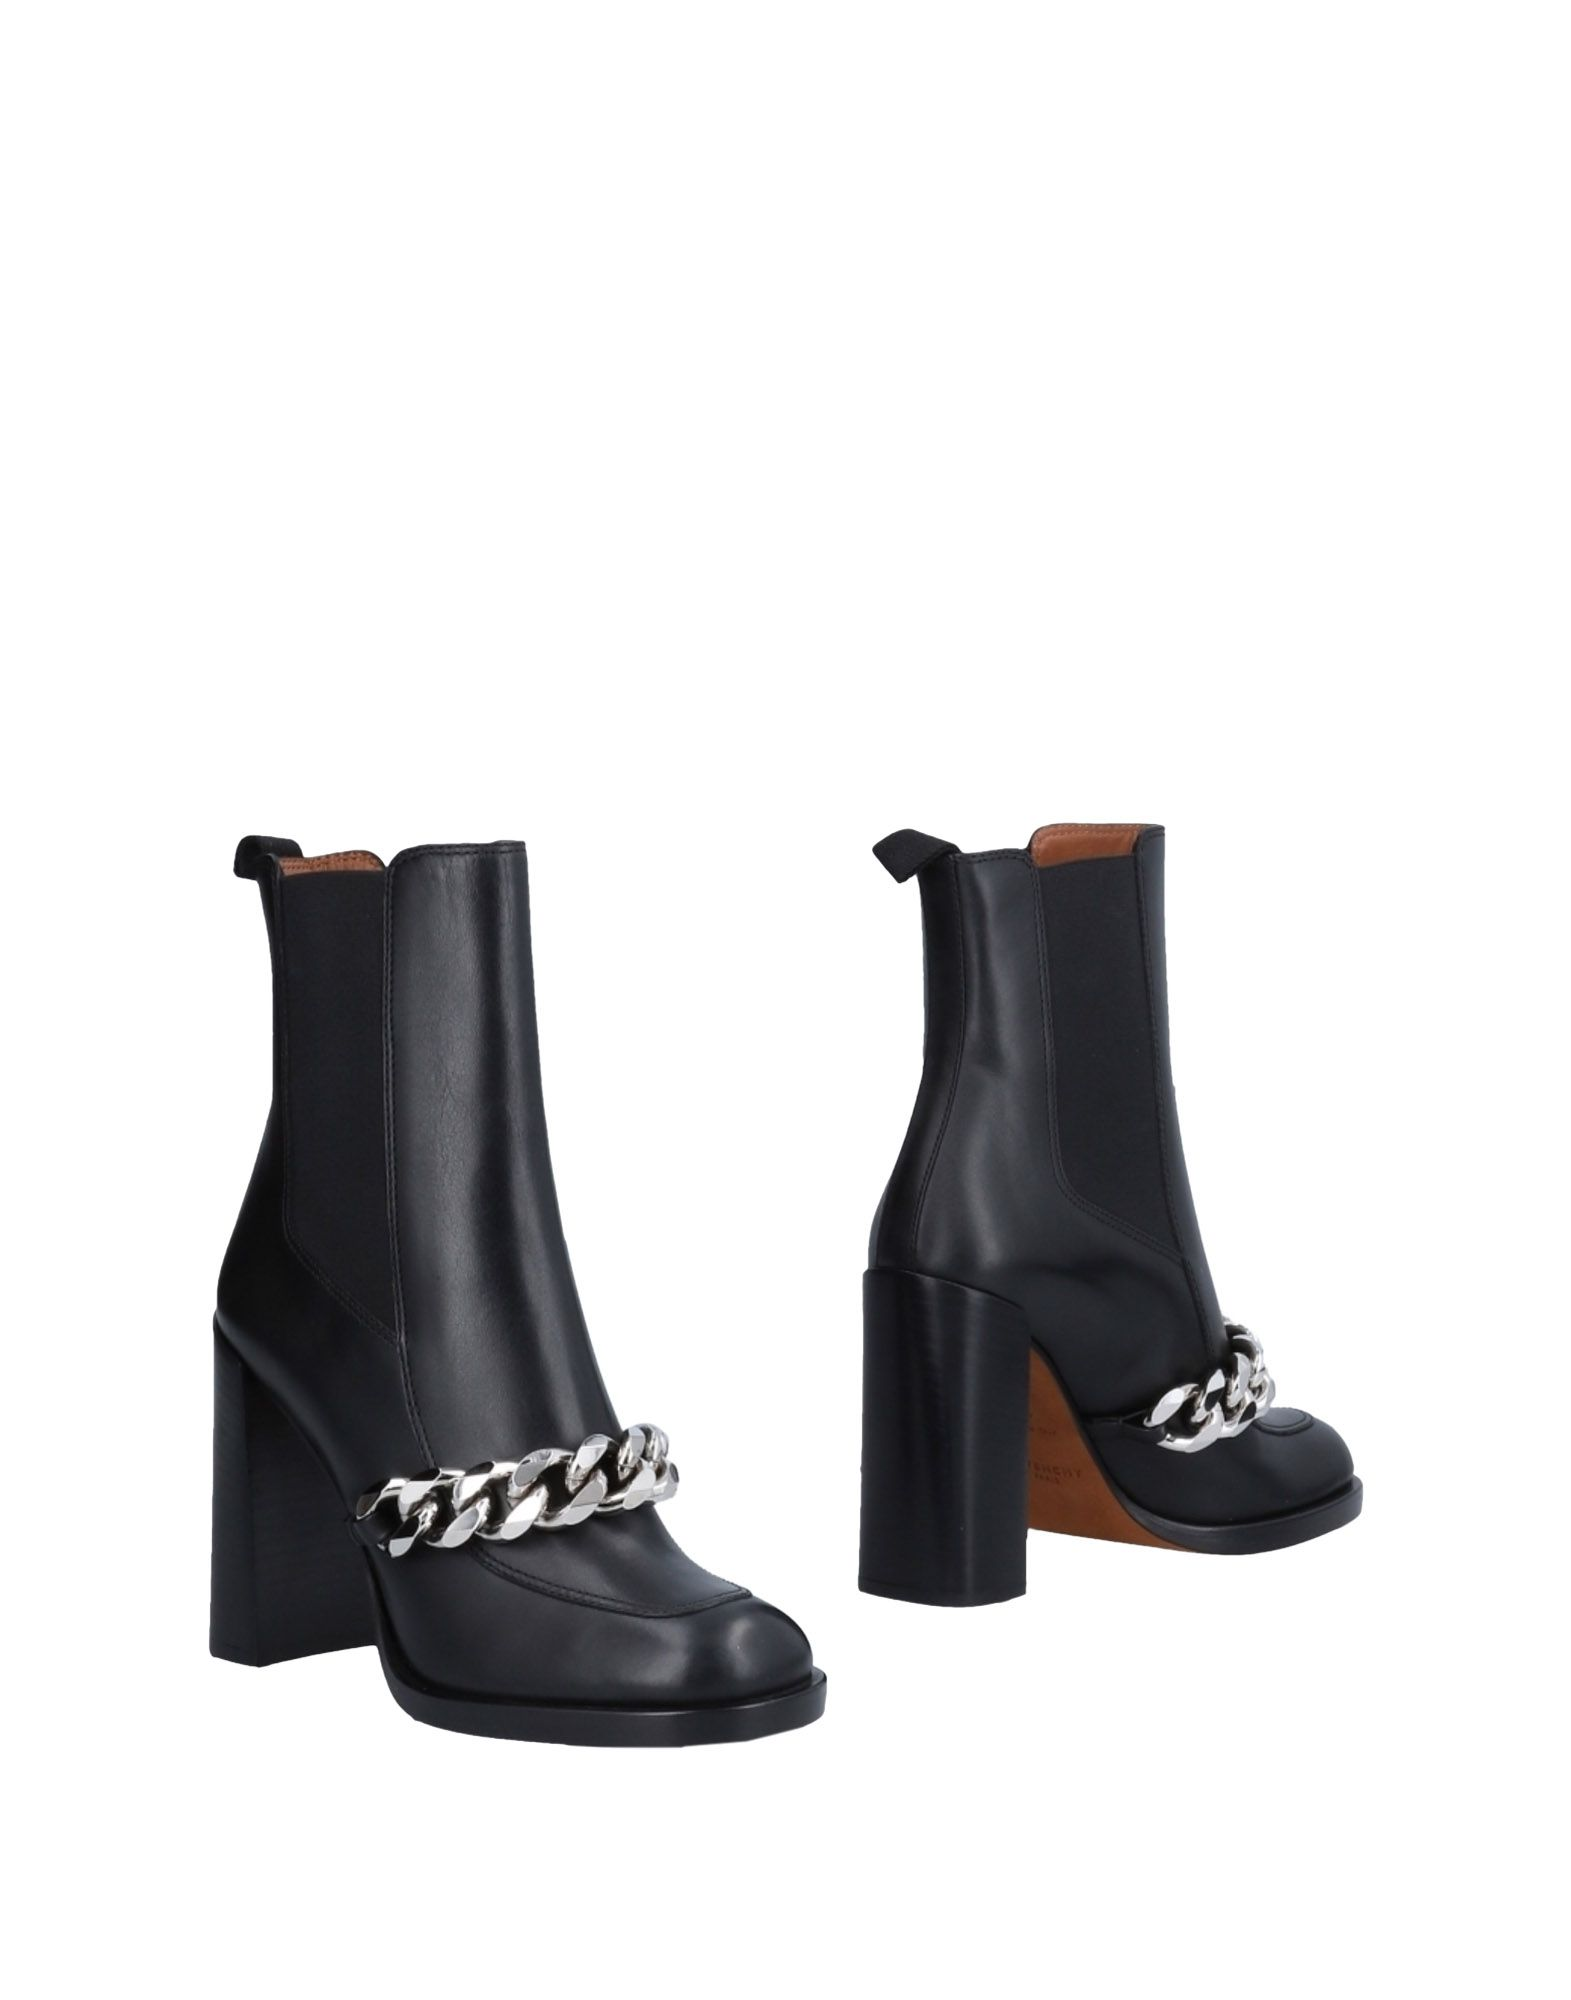 Givenchy on Ankle Boot - Women Givenchy Ankle Boots online on Givenchy  Australia - 11486703PO cfcf1a